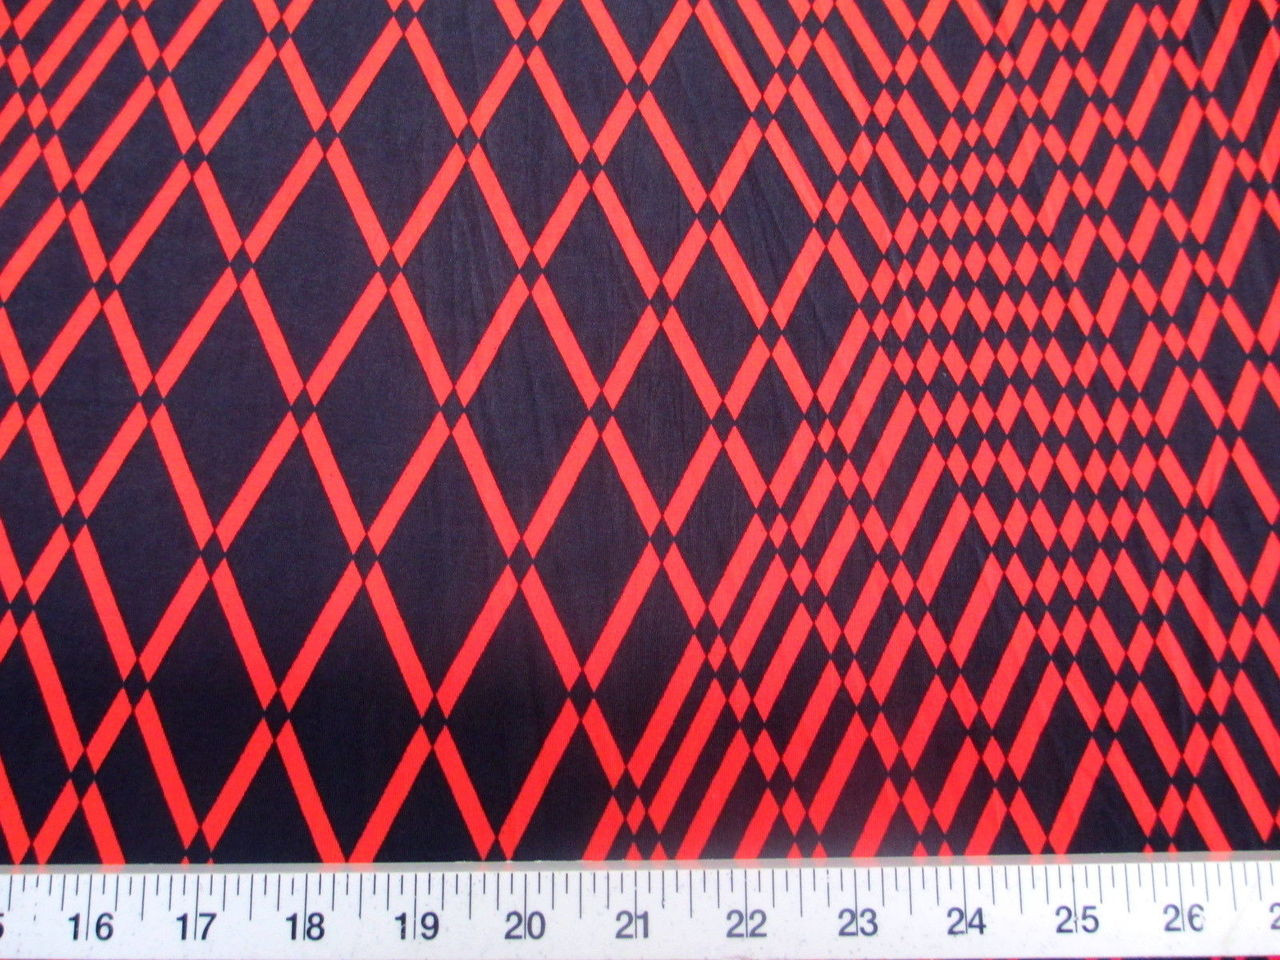 a3503a7db2870b Printed Lycra Spandex Stretch Red Orange Geometric Diamonds - Discount  Designer Fabric - Paylessfabrics.com